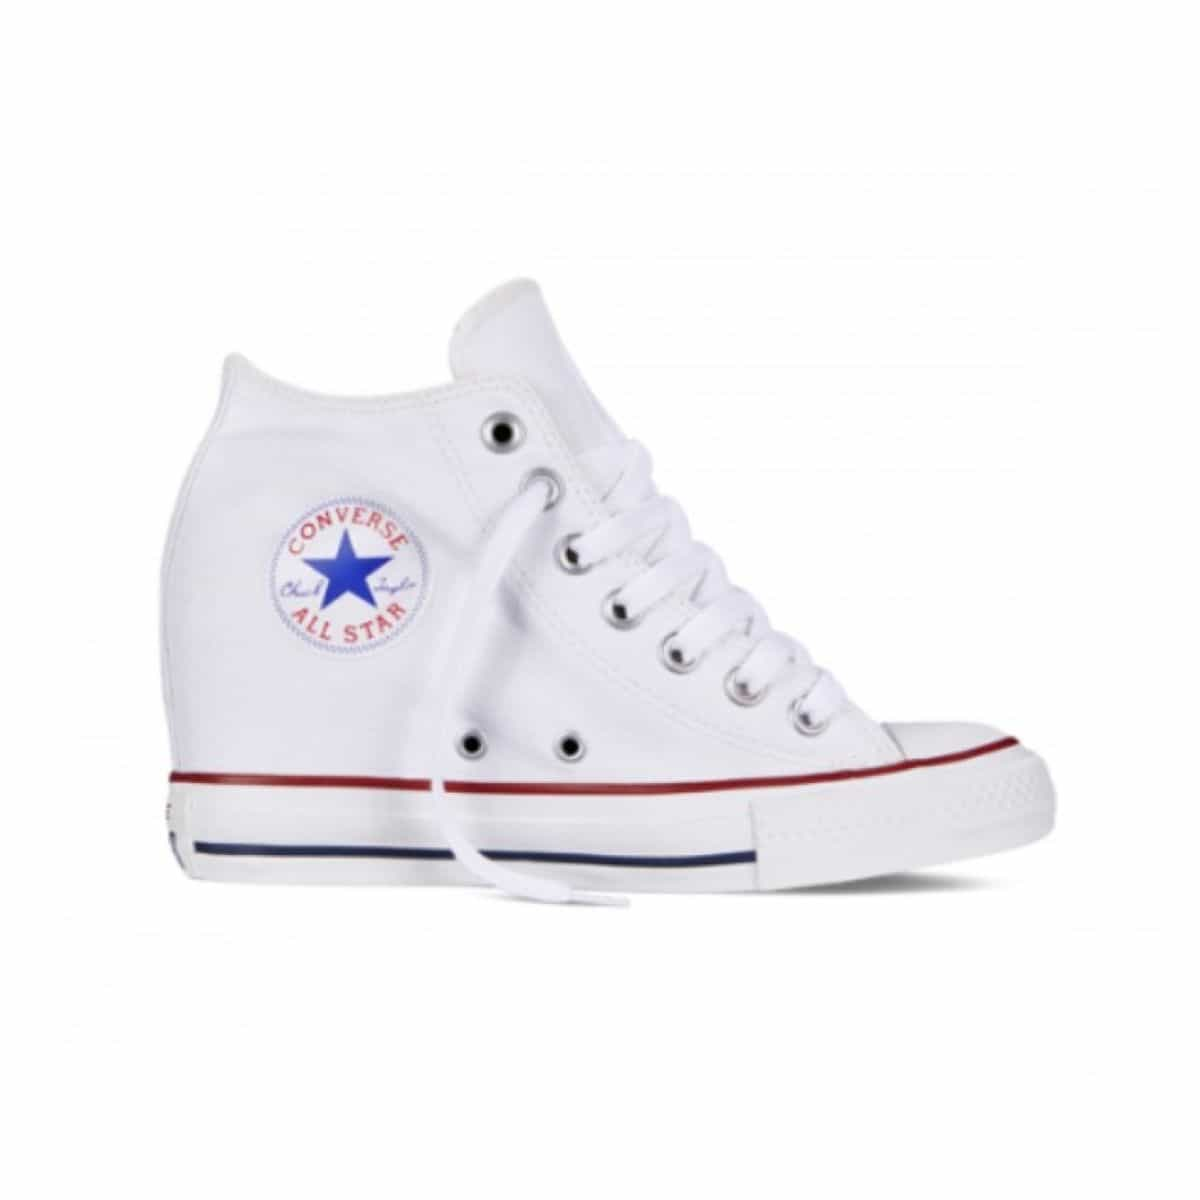 TENISI CONVERSE CHUCK TAYLOR ALL STAR LUX MID - 547200C